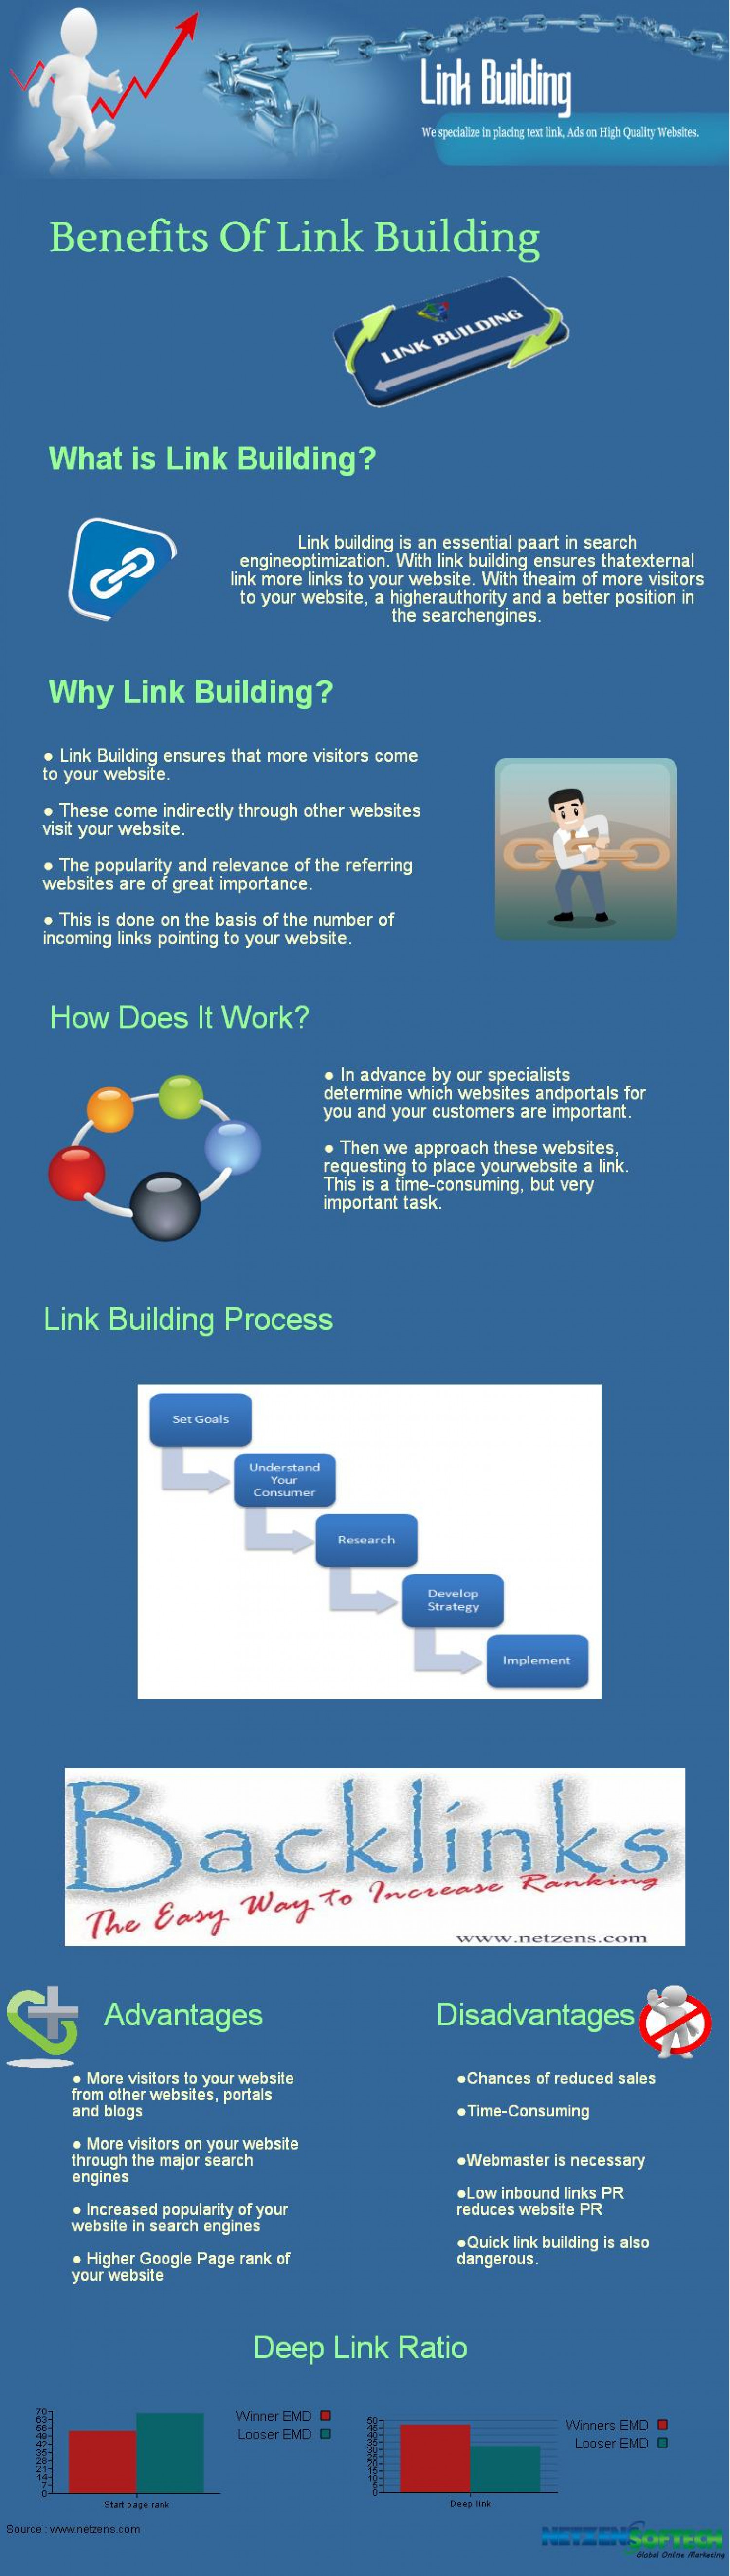 Benefits of Link Building Infographic